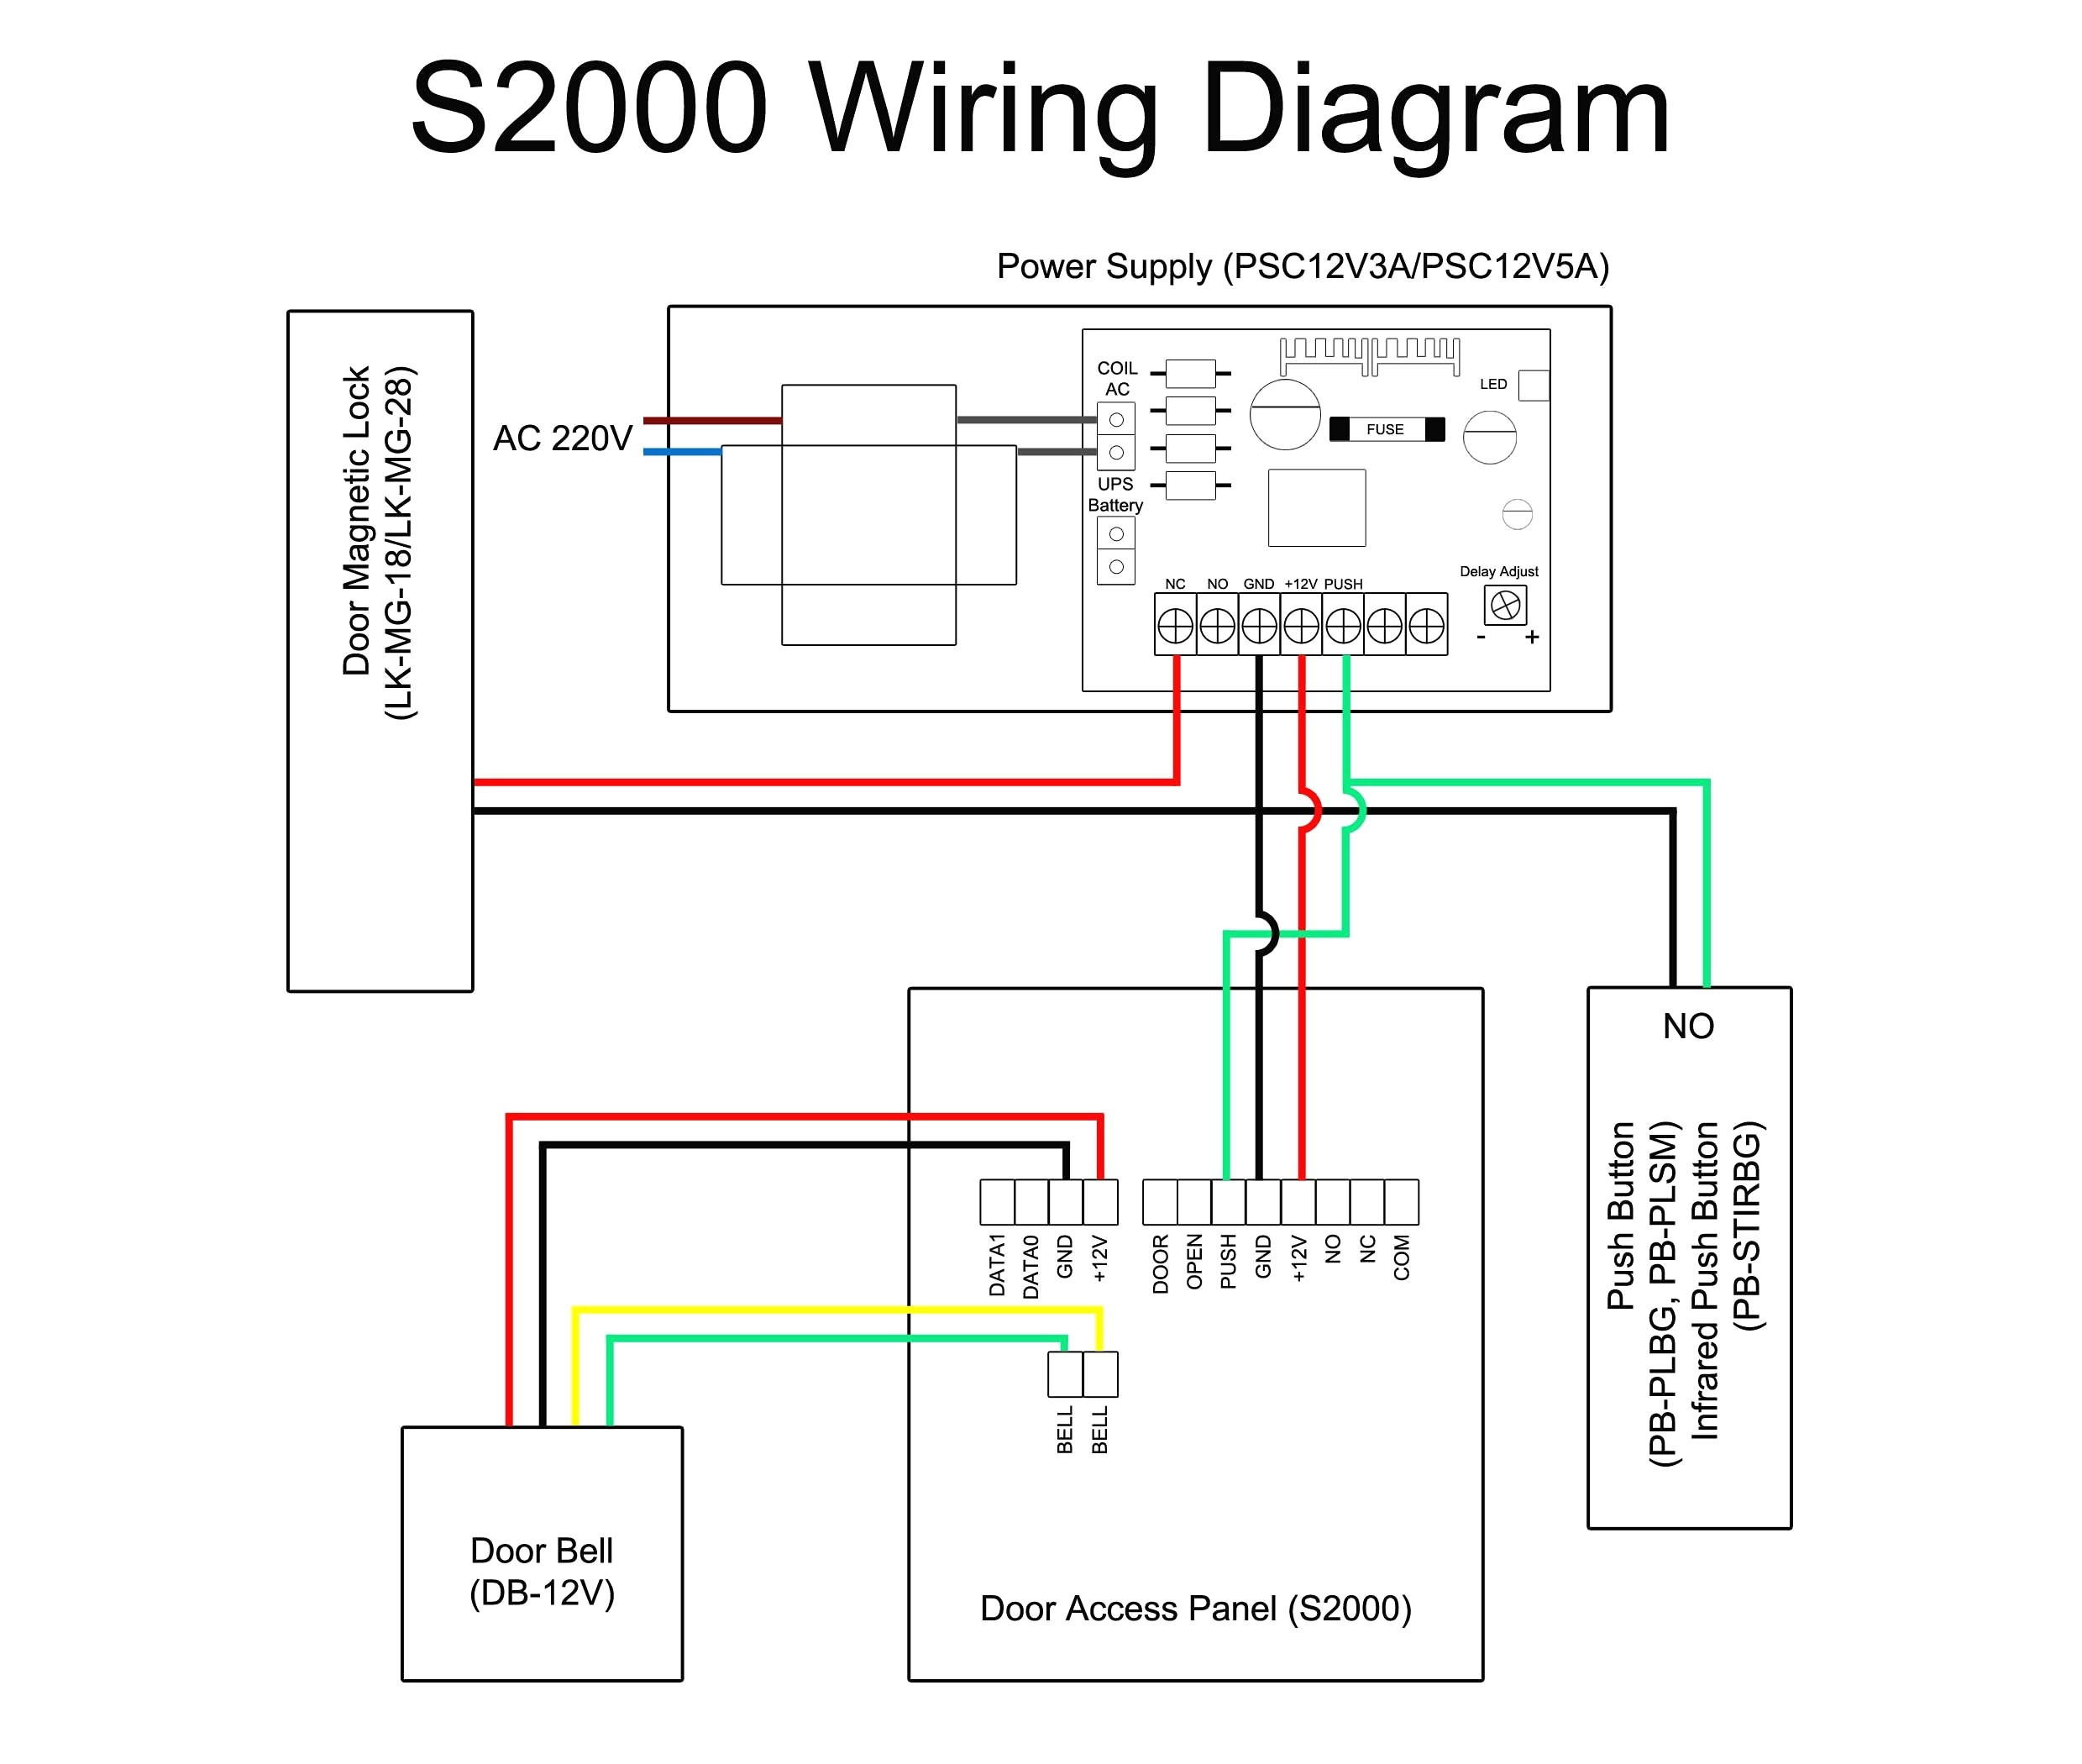 magnetic door switch wiring diagram Collection-Wiring Diagram for Magnetic Door Lock Best Valid Wiring Diagram Intruder Alarm 6-c